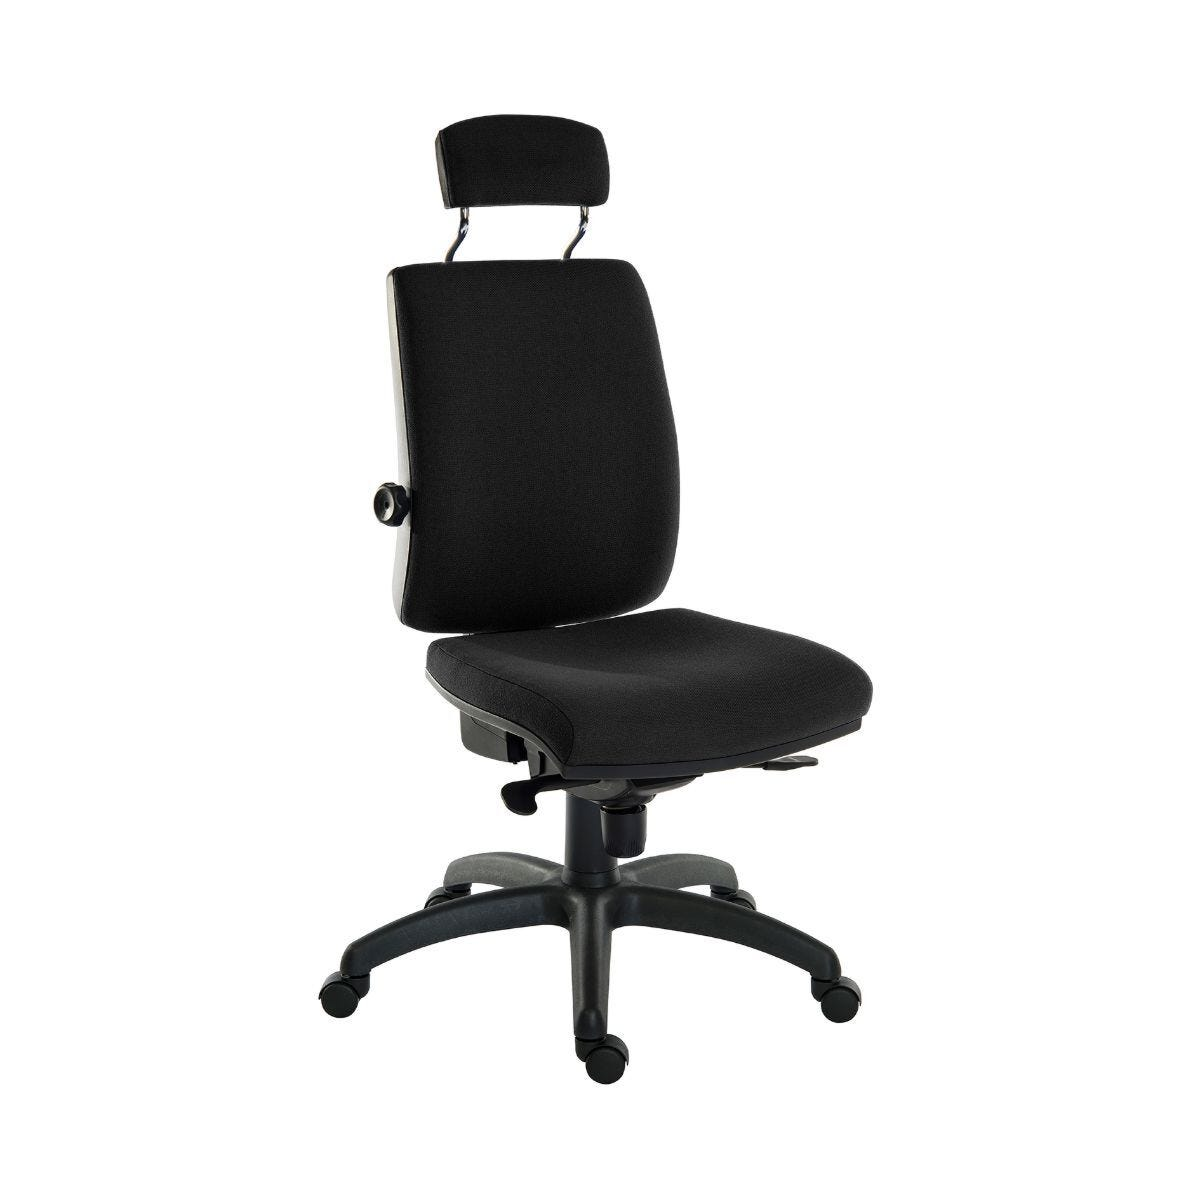 Teknik Office Ergo Plus 24 Hour Ergonomic Executive Operator Chair with Headrest Black